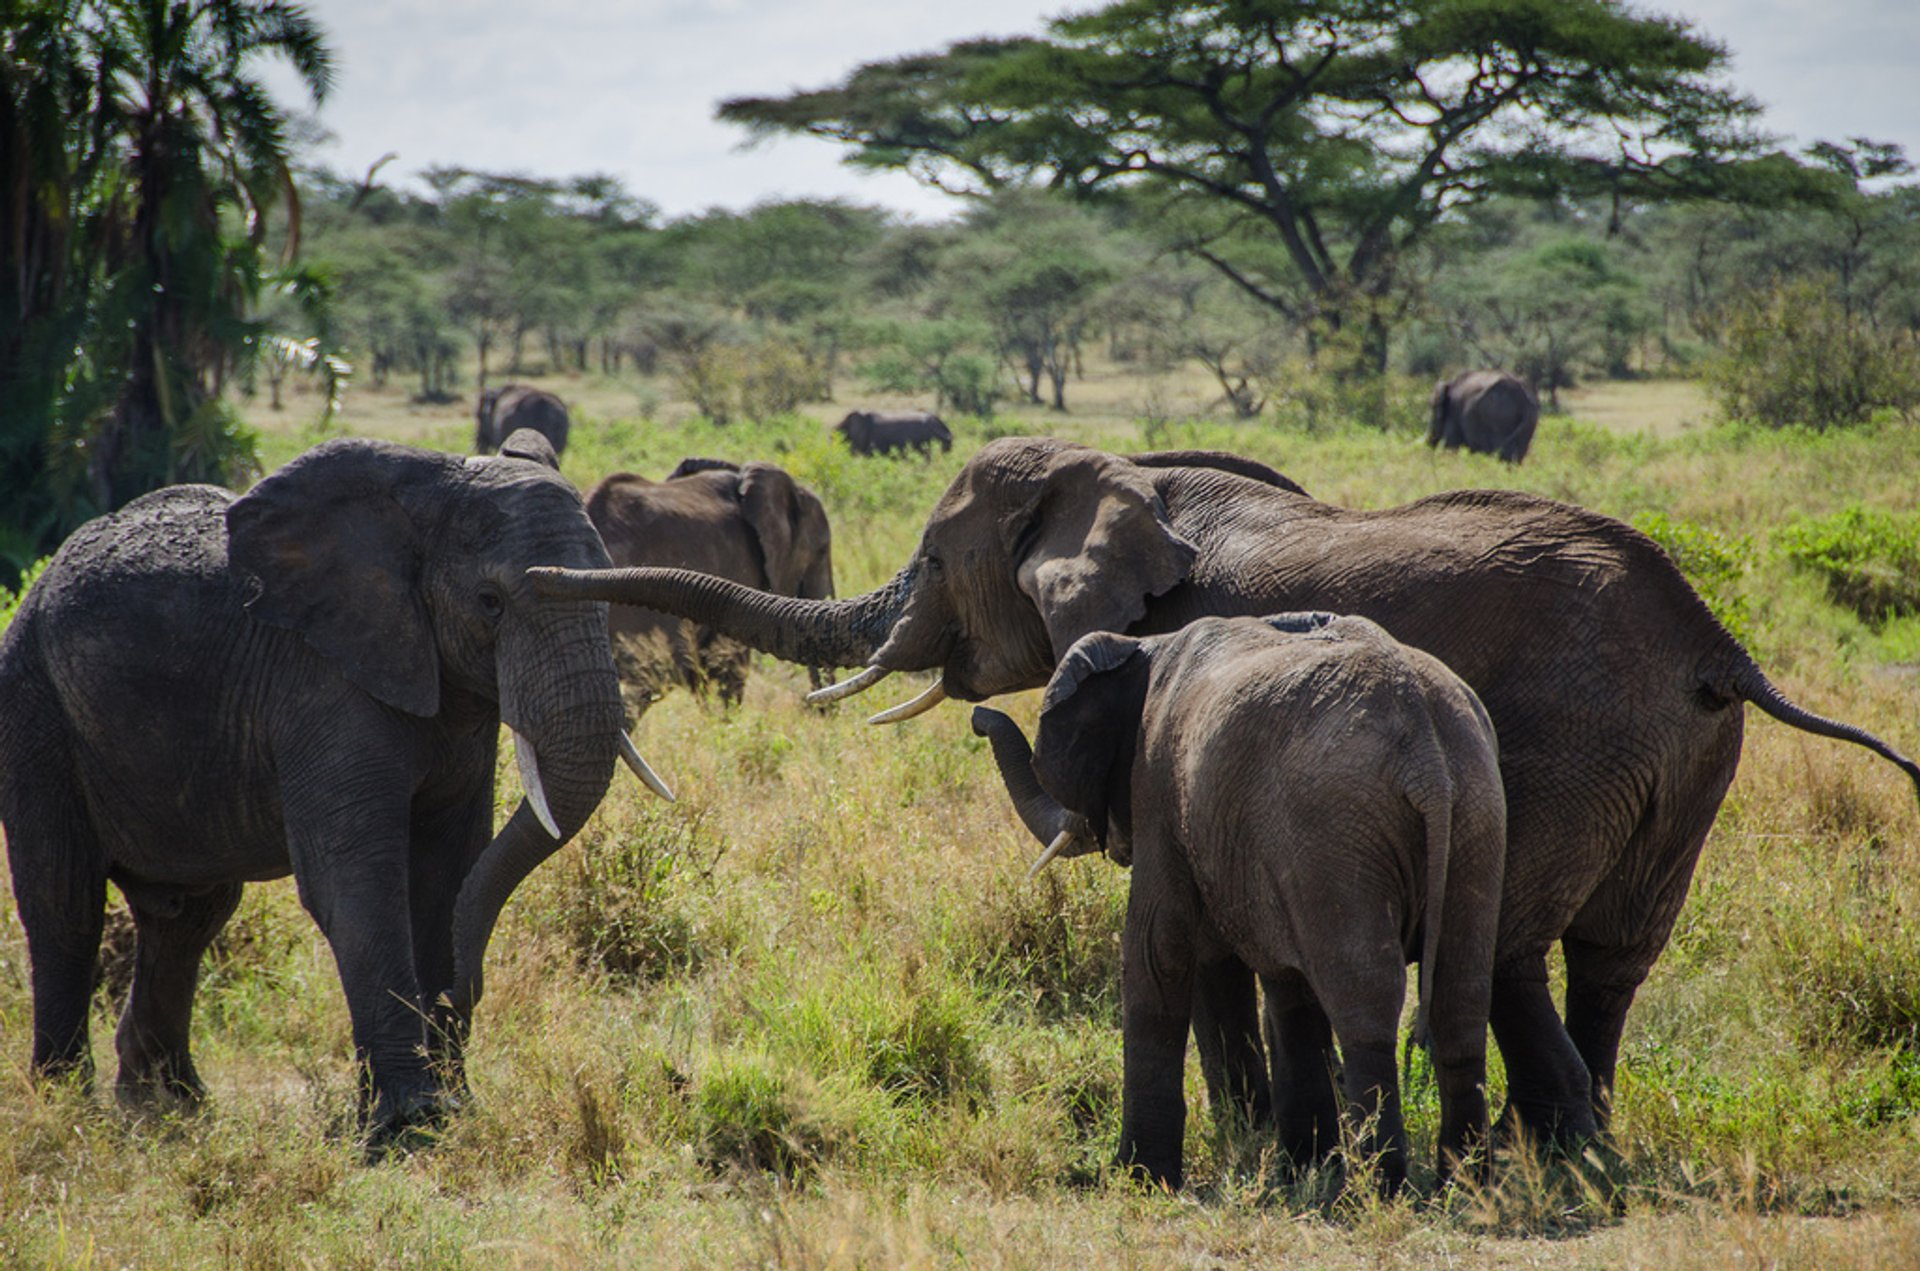 Herd of elephants in the Serengeti 2020